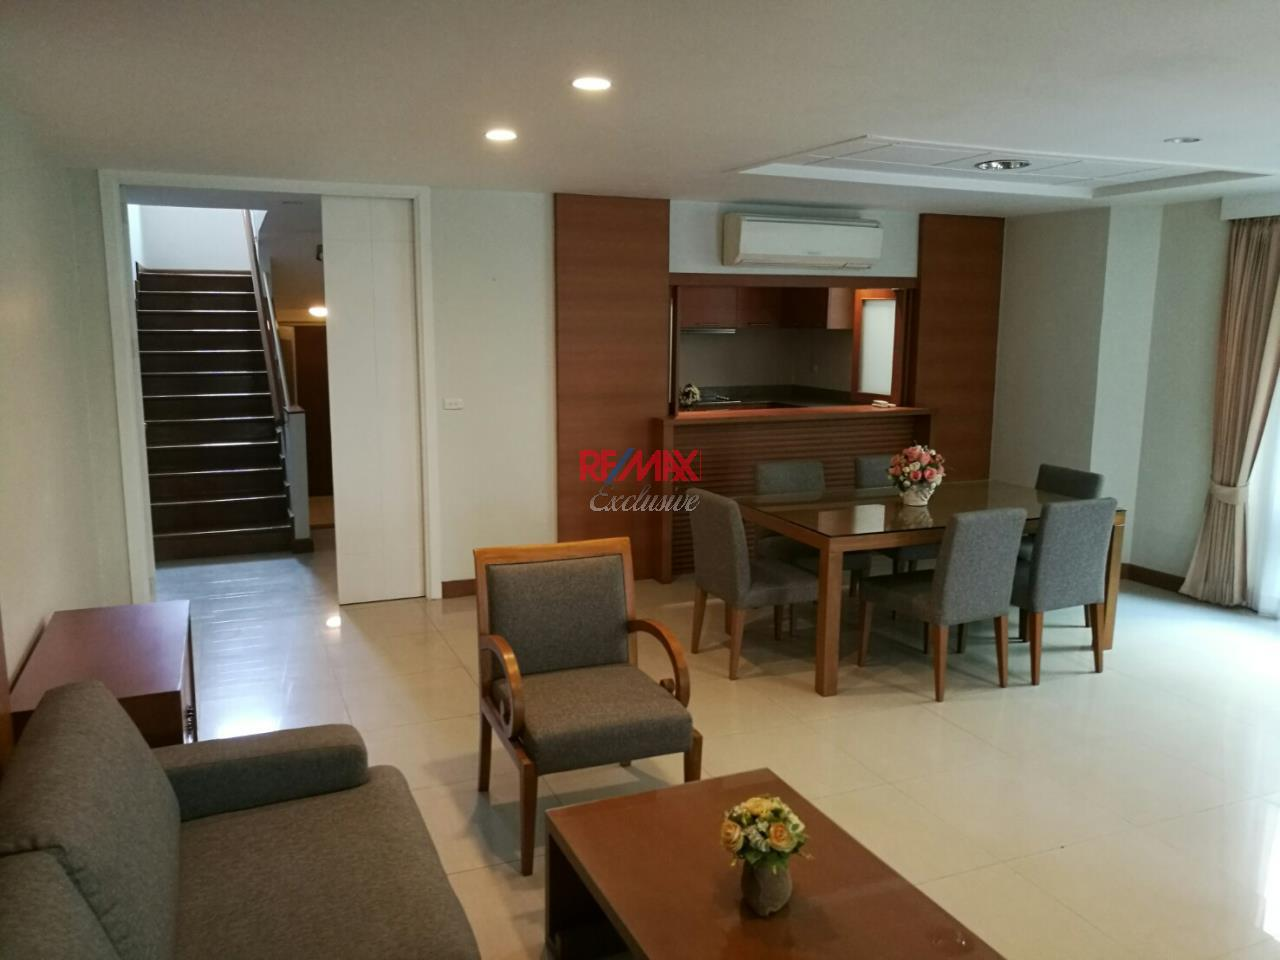 RE/MAX Exclusive Agency's Compound house, 300 sqm, 4 +1 bedrooms for rent in Ekkamai 22 1